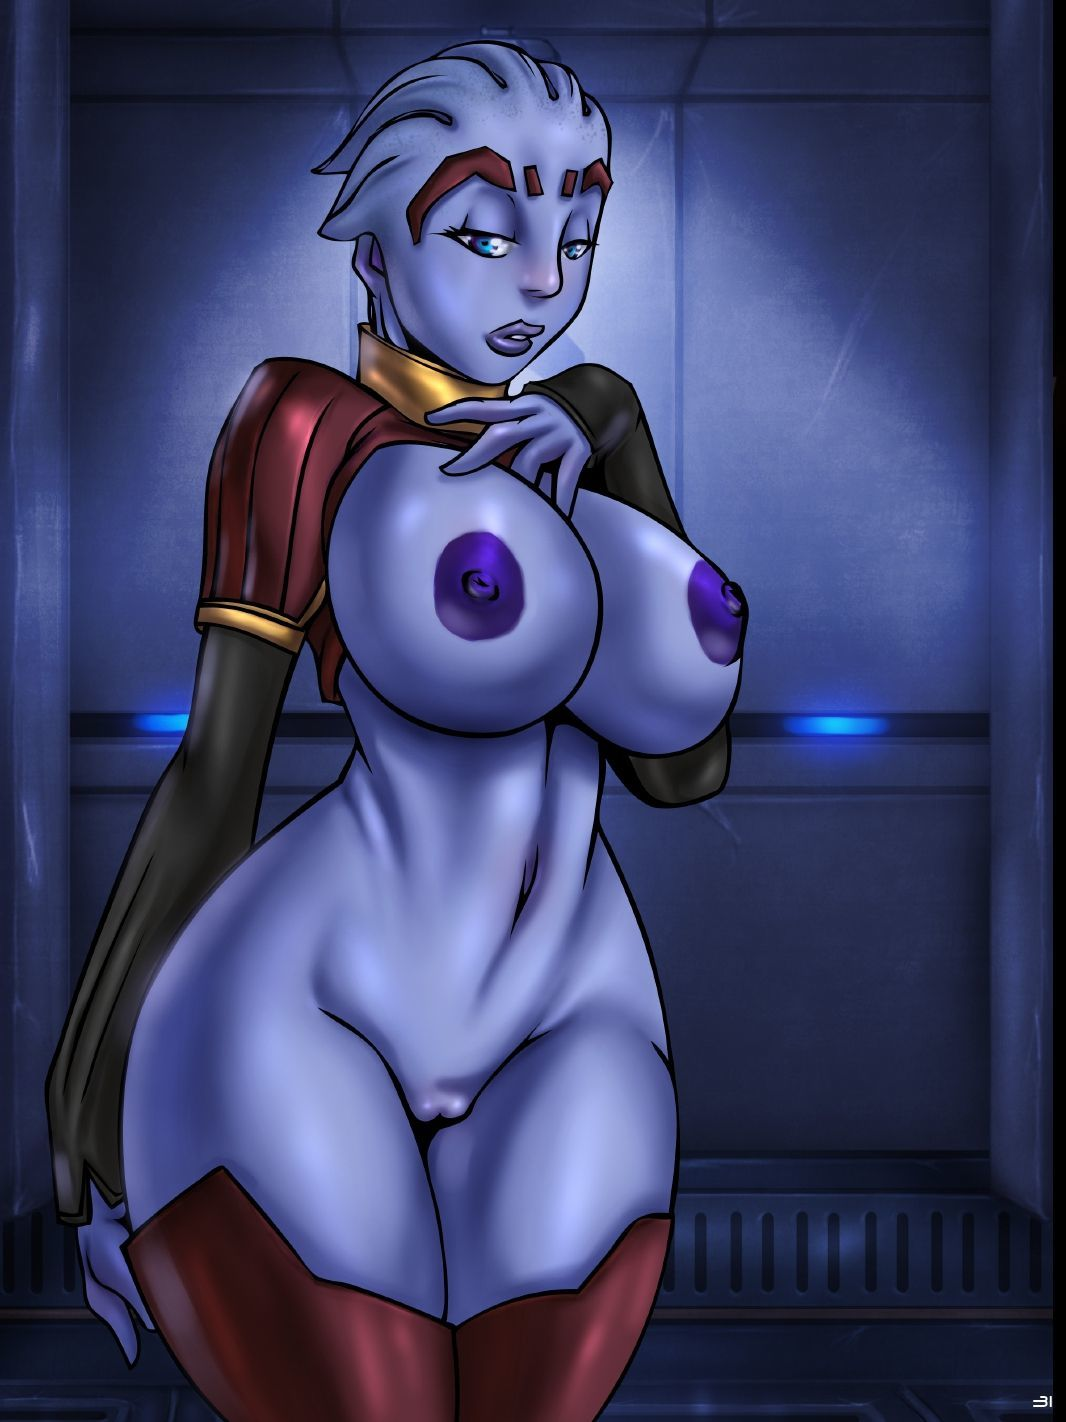 FORNAX_The_galaxys_finest_xenophilia_(Mass_Effect) comix_58004.jpg